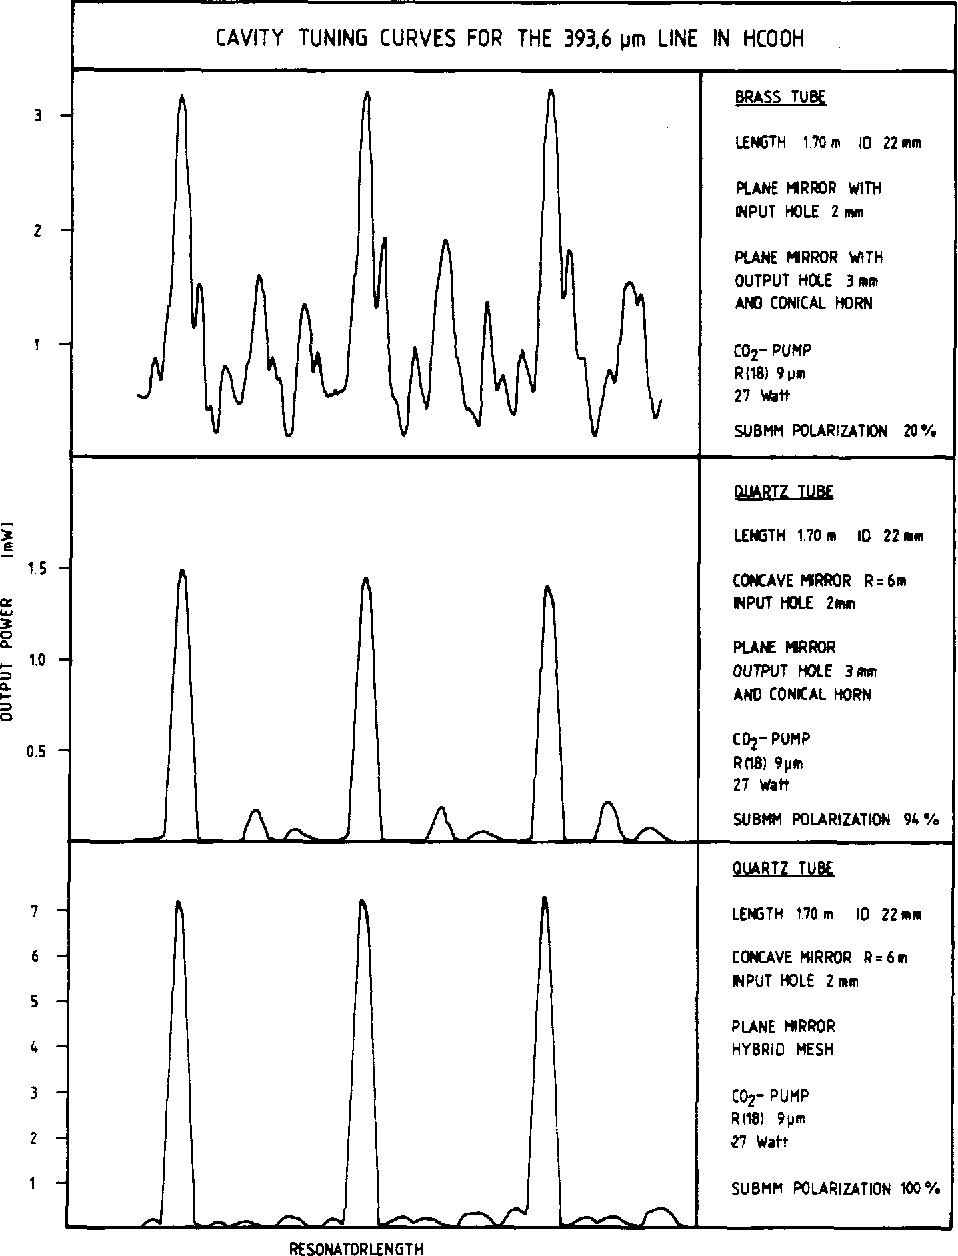 Fig. 8. Cavity tuning curves for 393.6-pm HCOOH line experimentally obtained by Roser et al. [58]. (Reproduced with permission from Int. J. Infrared and Millimeter Waves, vol. 3, pp. 839-868, 1982.)